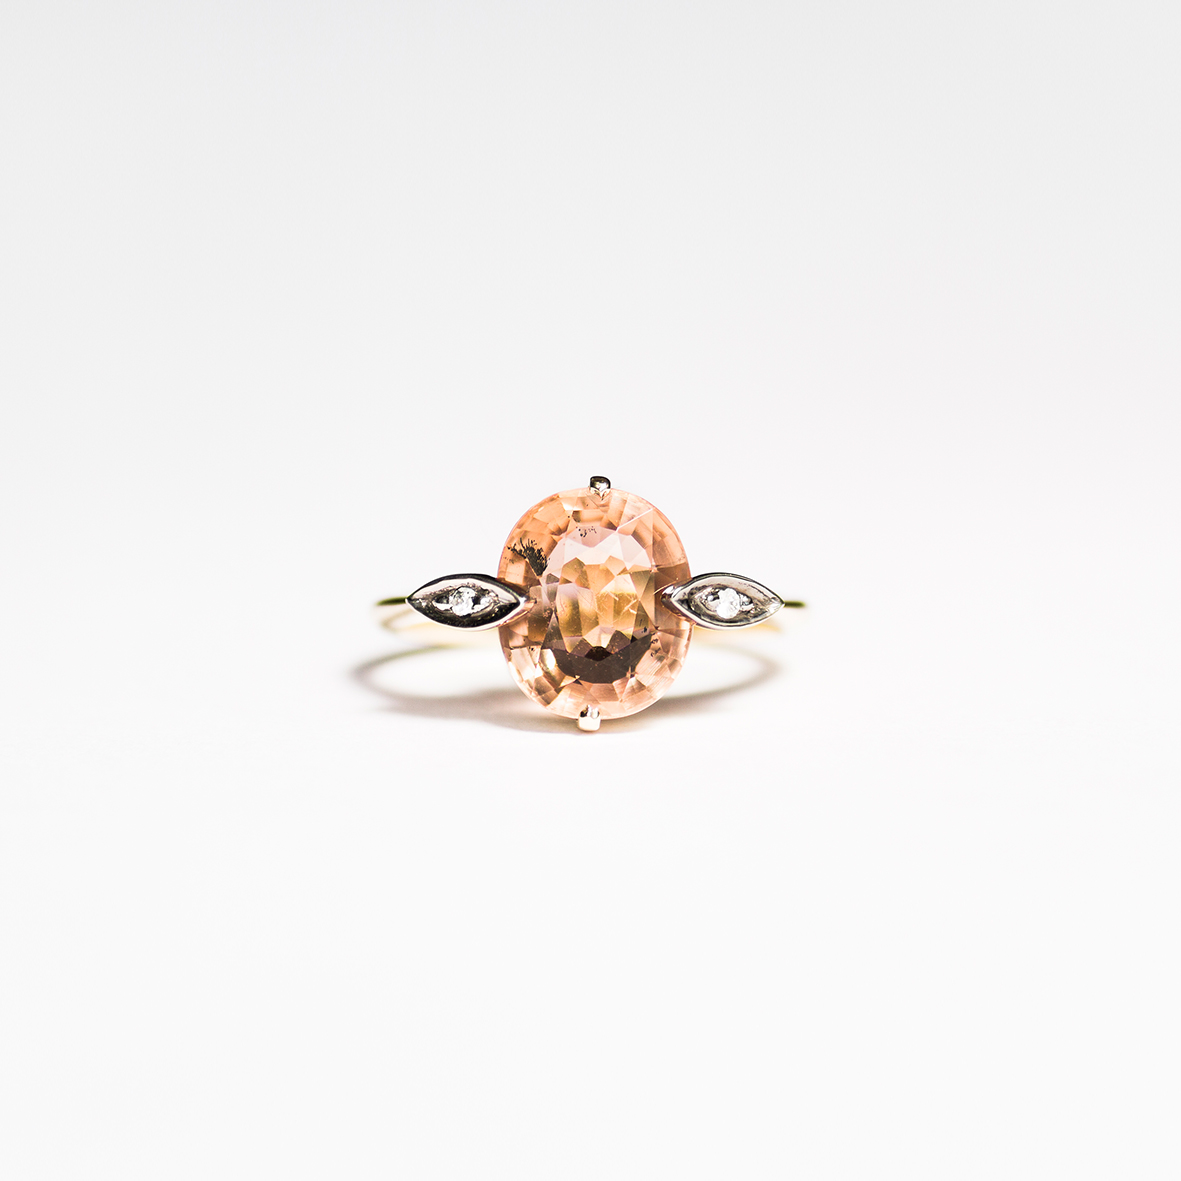 1. OONA_engagement_ficha1_peach tourmaline ring